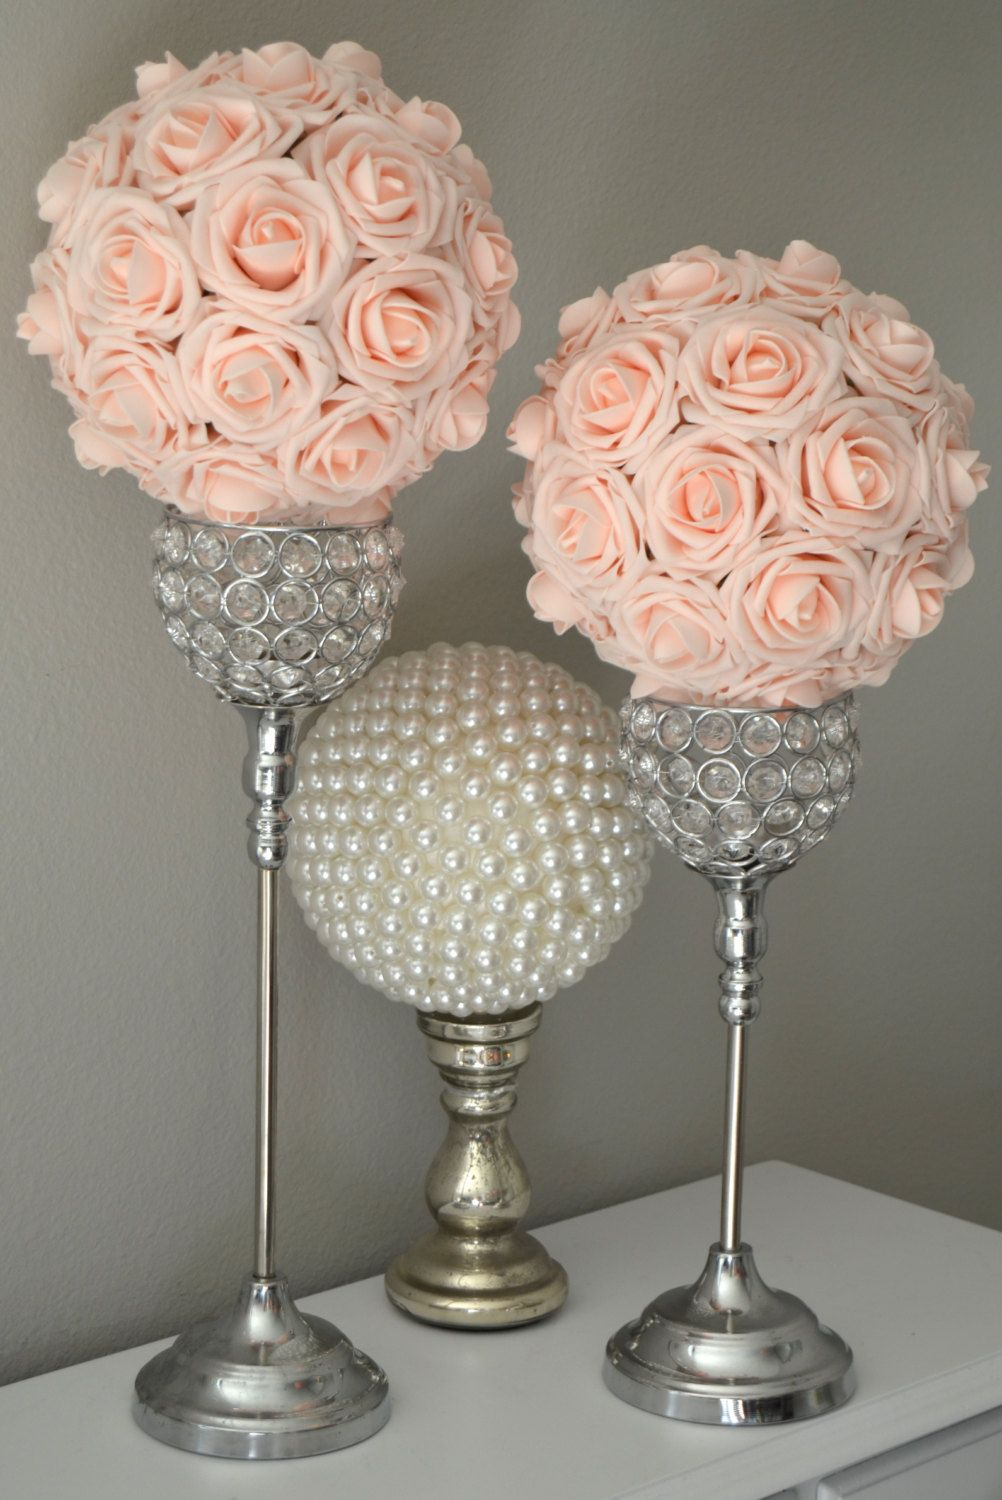 Pink Blush Kissing Ball Wedding Centerpiece Pink Blush Wedding Flower Ball Pomander F Blush Wedding Centerpieces Blush Wedding Flowers Blush Bridal Showers